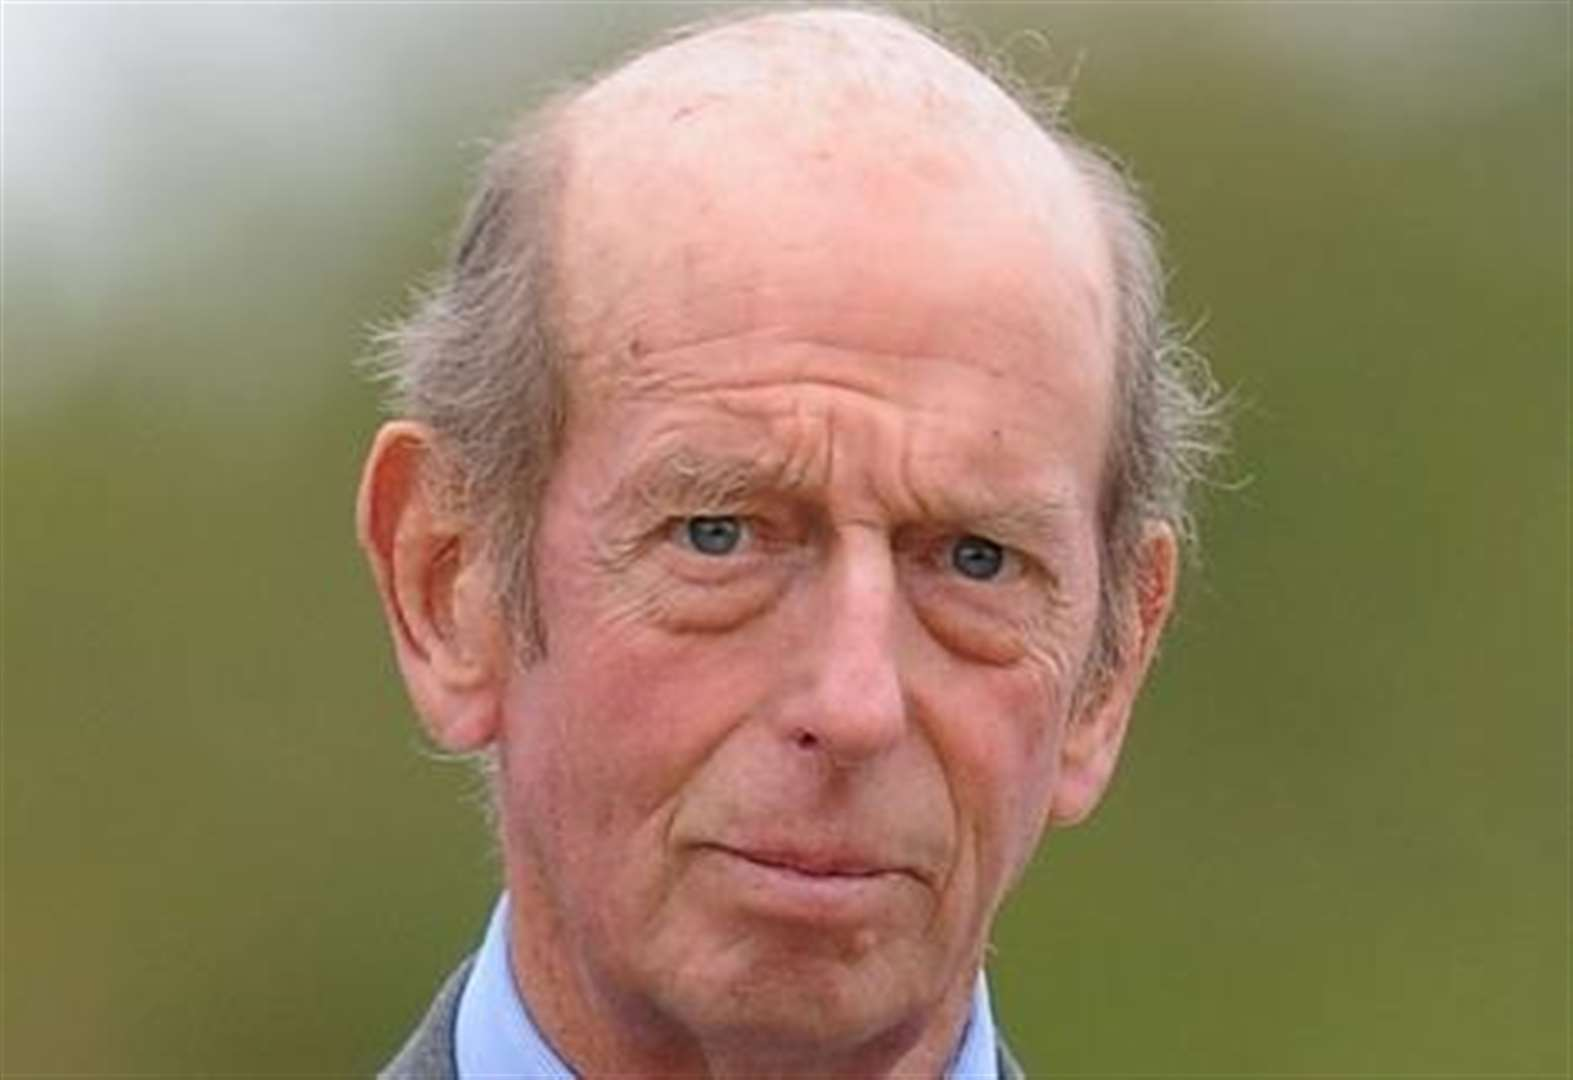 Details released of royal visit to Spalding next week